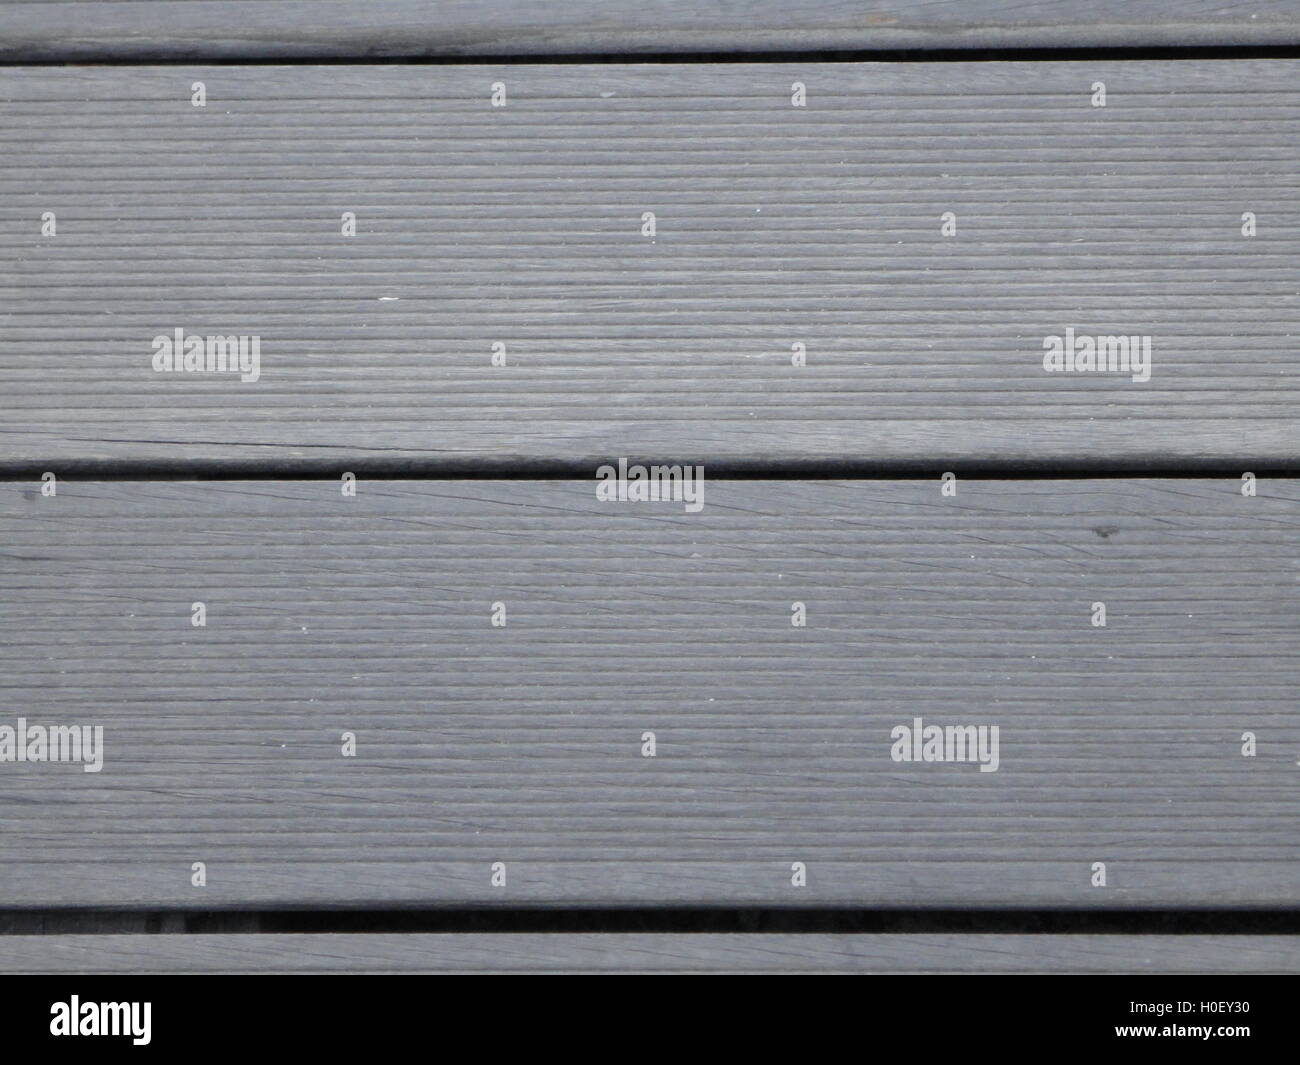 detail shot of horizontal planks of wood, texture, pattern, monochrome, light colours - Stock Image